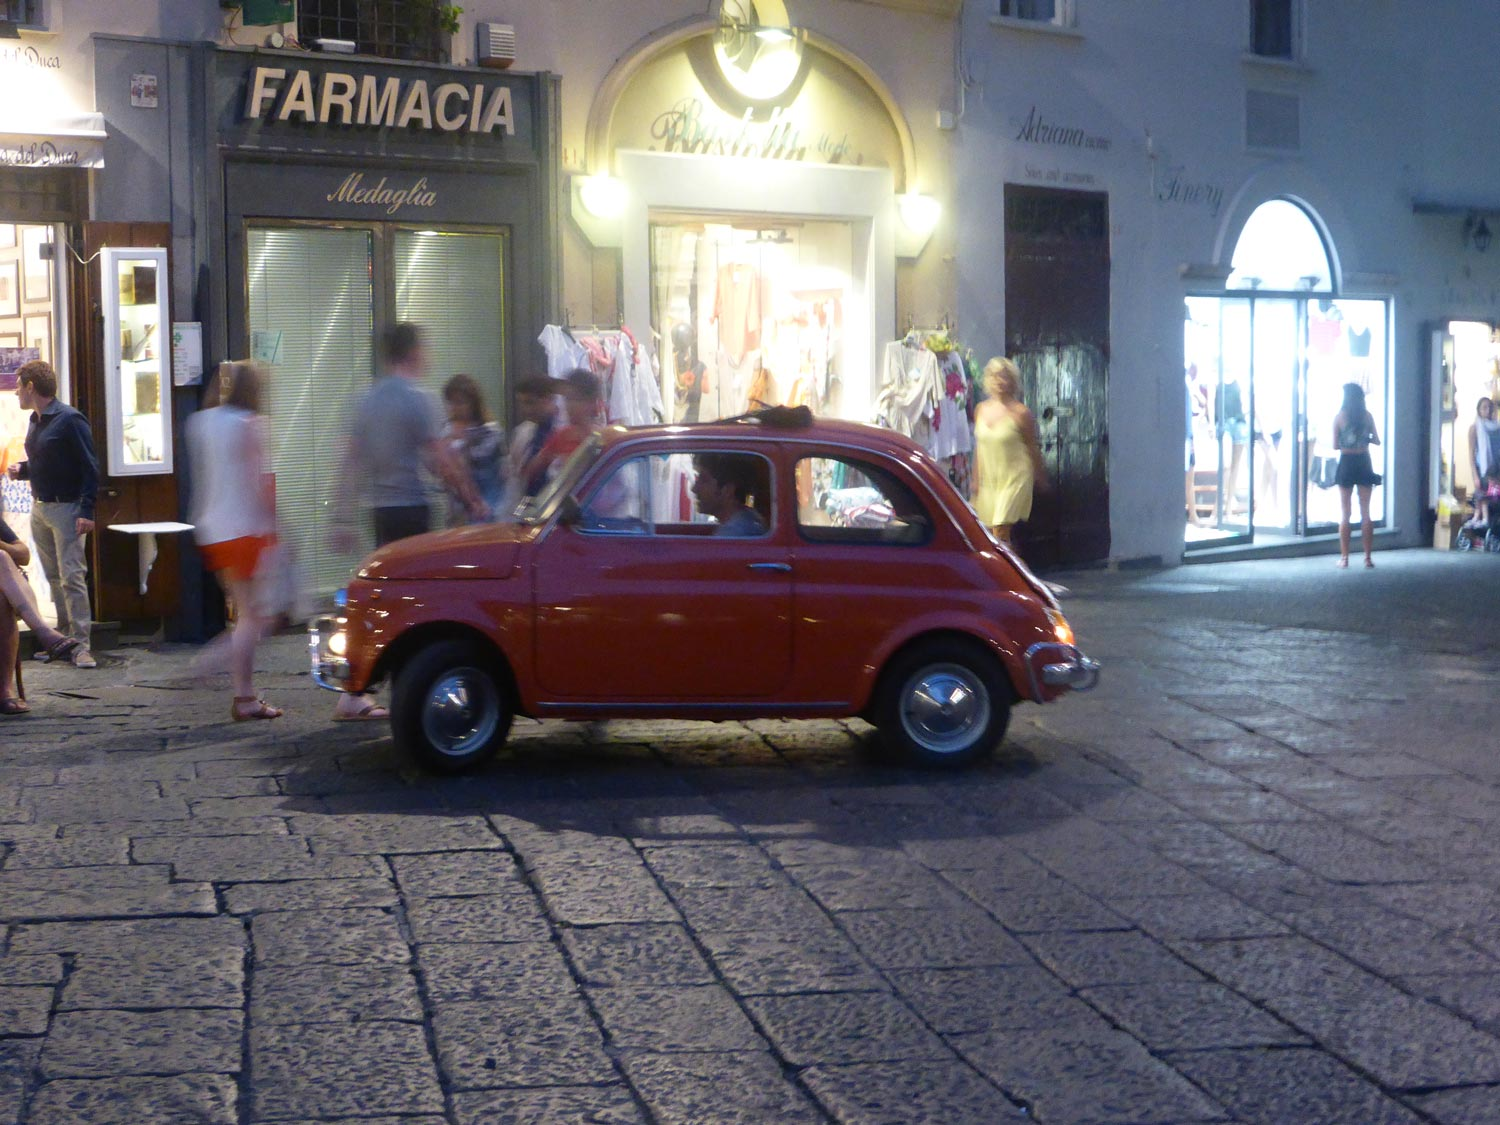 Common Fiat vehicle driving through Piazza Italy